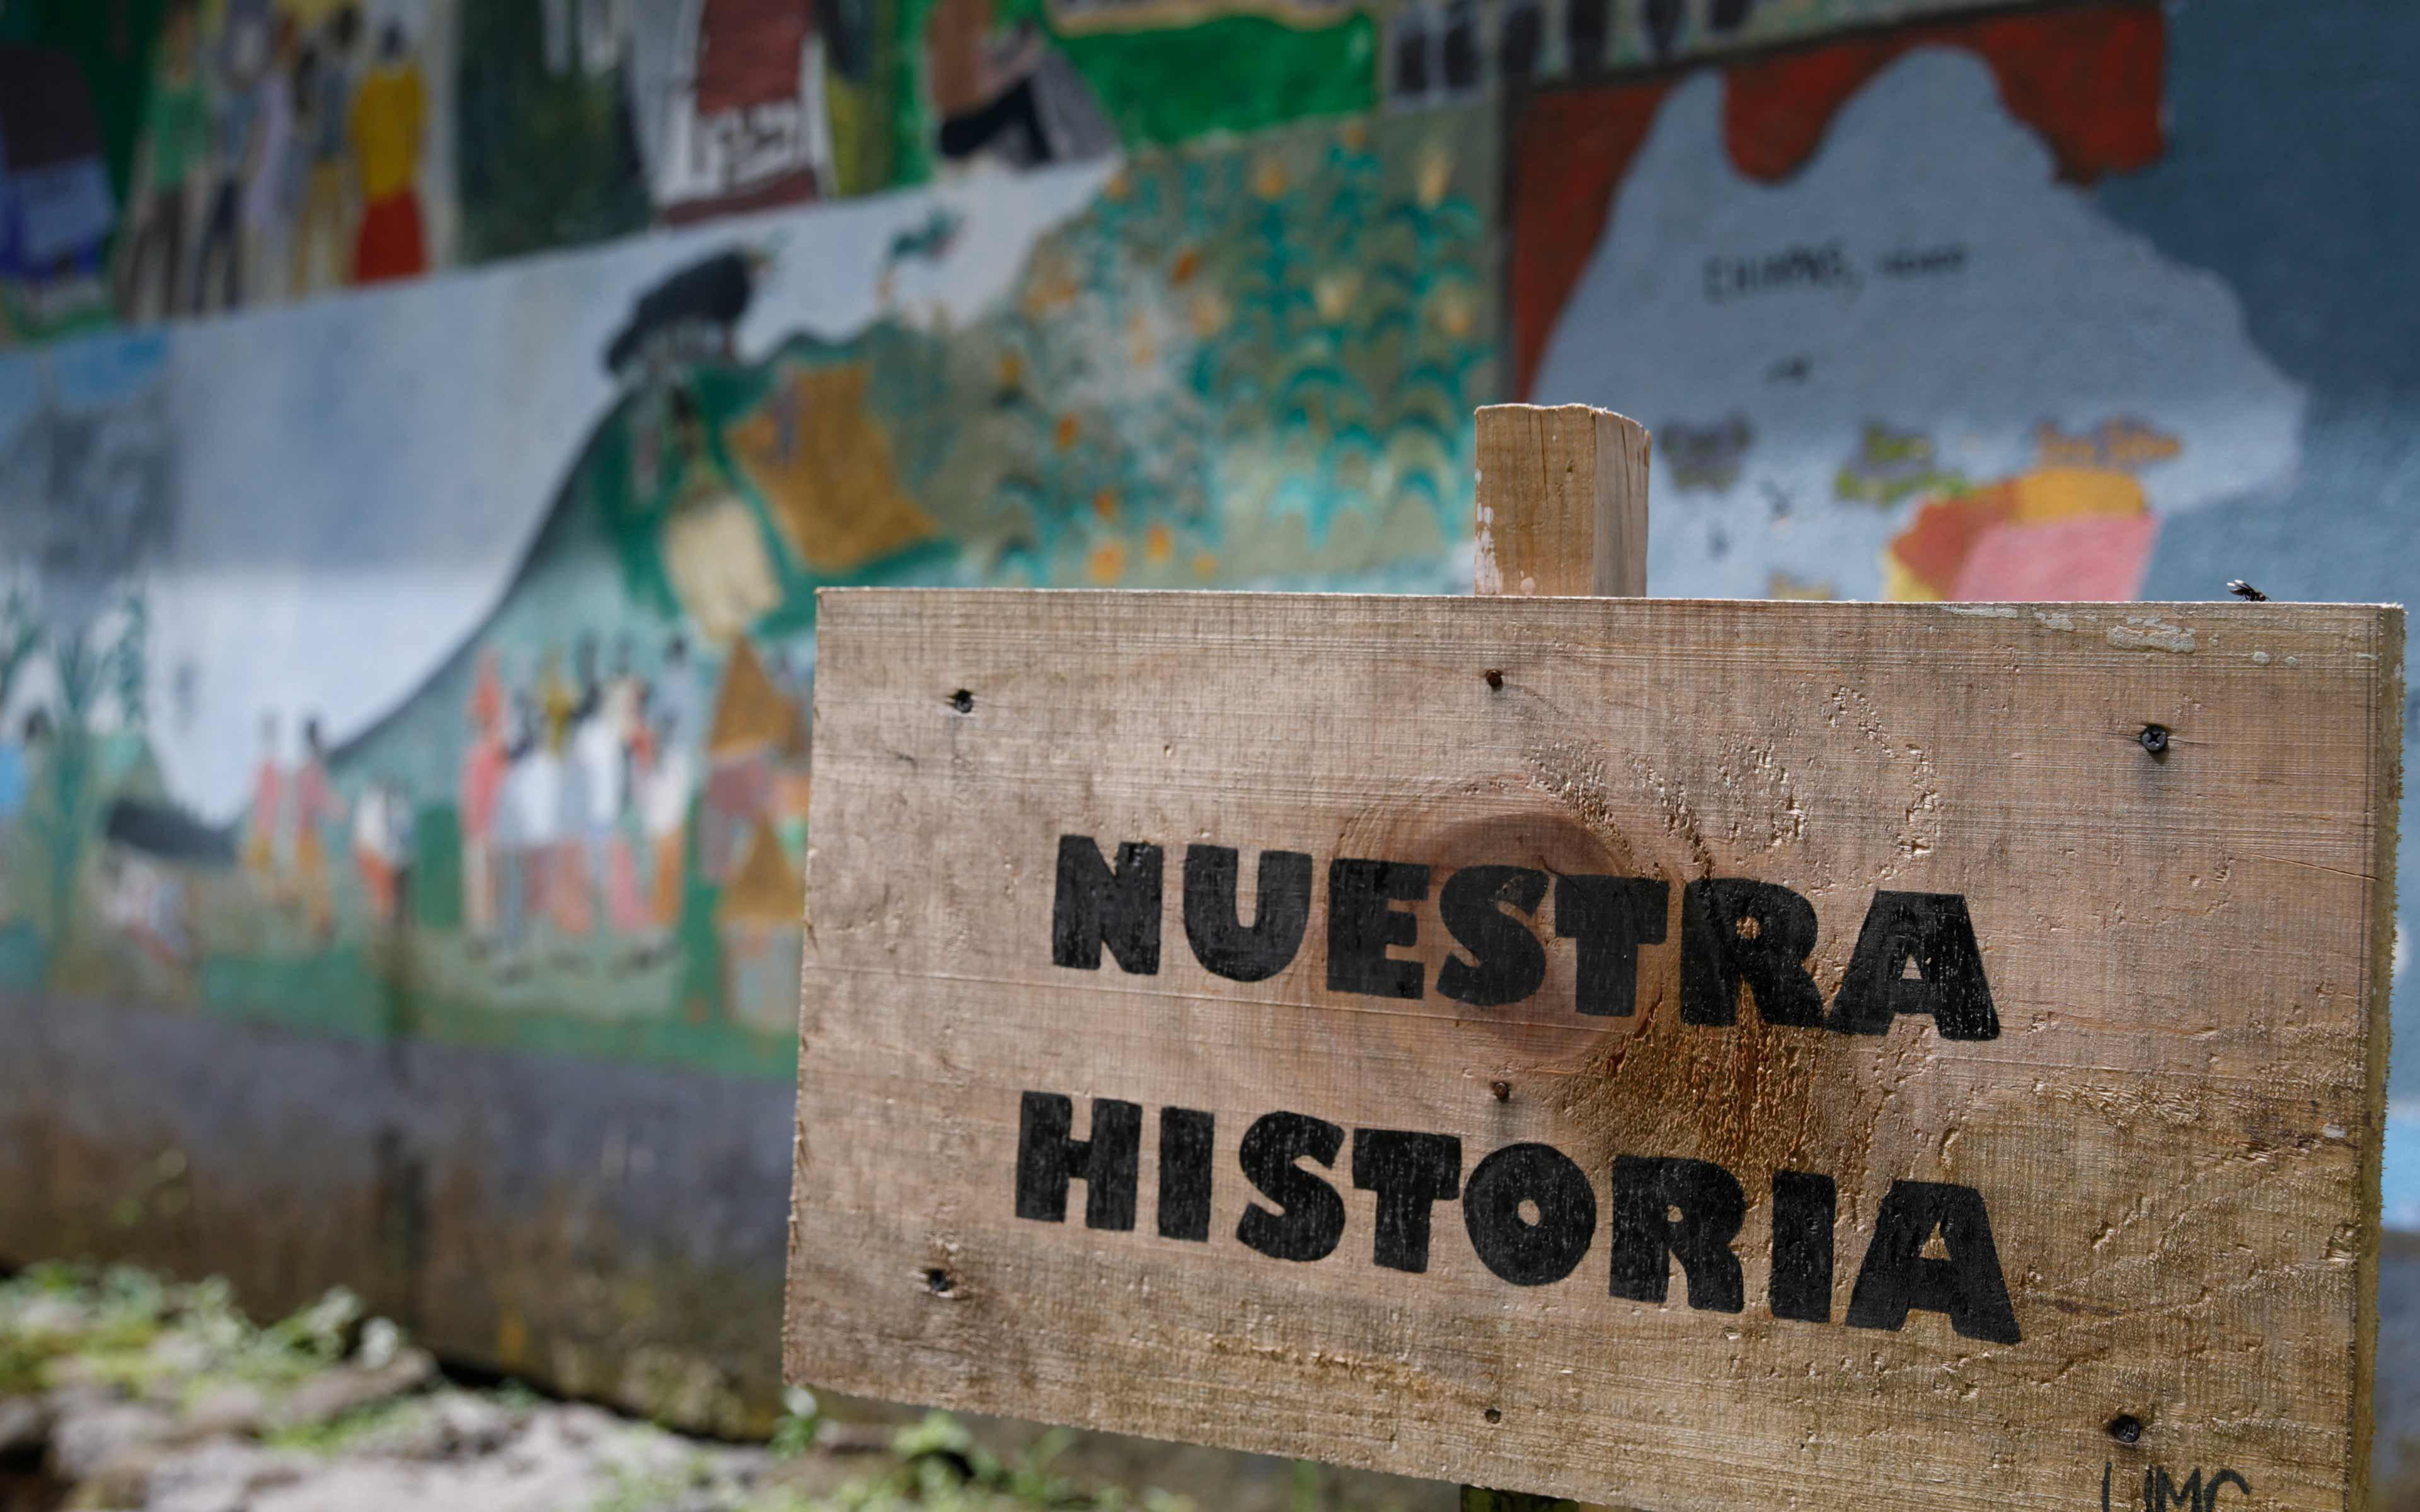 """""""Our Story:"""" A sign in front of mural depicting the tragic history of the community in La Trinidad, from a peaceful indigenous Maya village in the western highlands, to conflict and displacement to Mexico in the 1980s, and finally to repatriation and resettlement in Escuintla after the 1998 Peace Accords."""